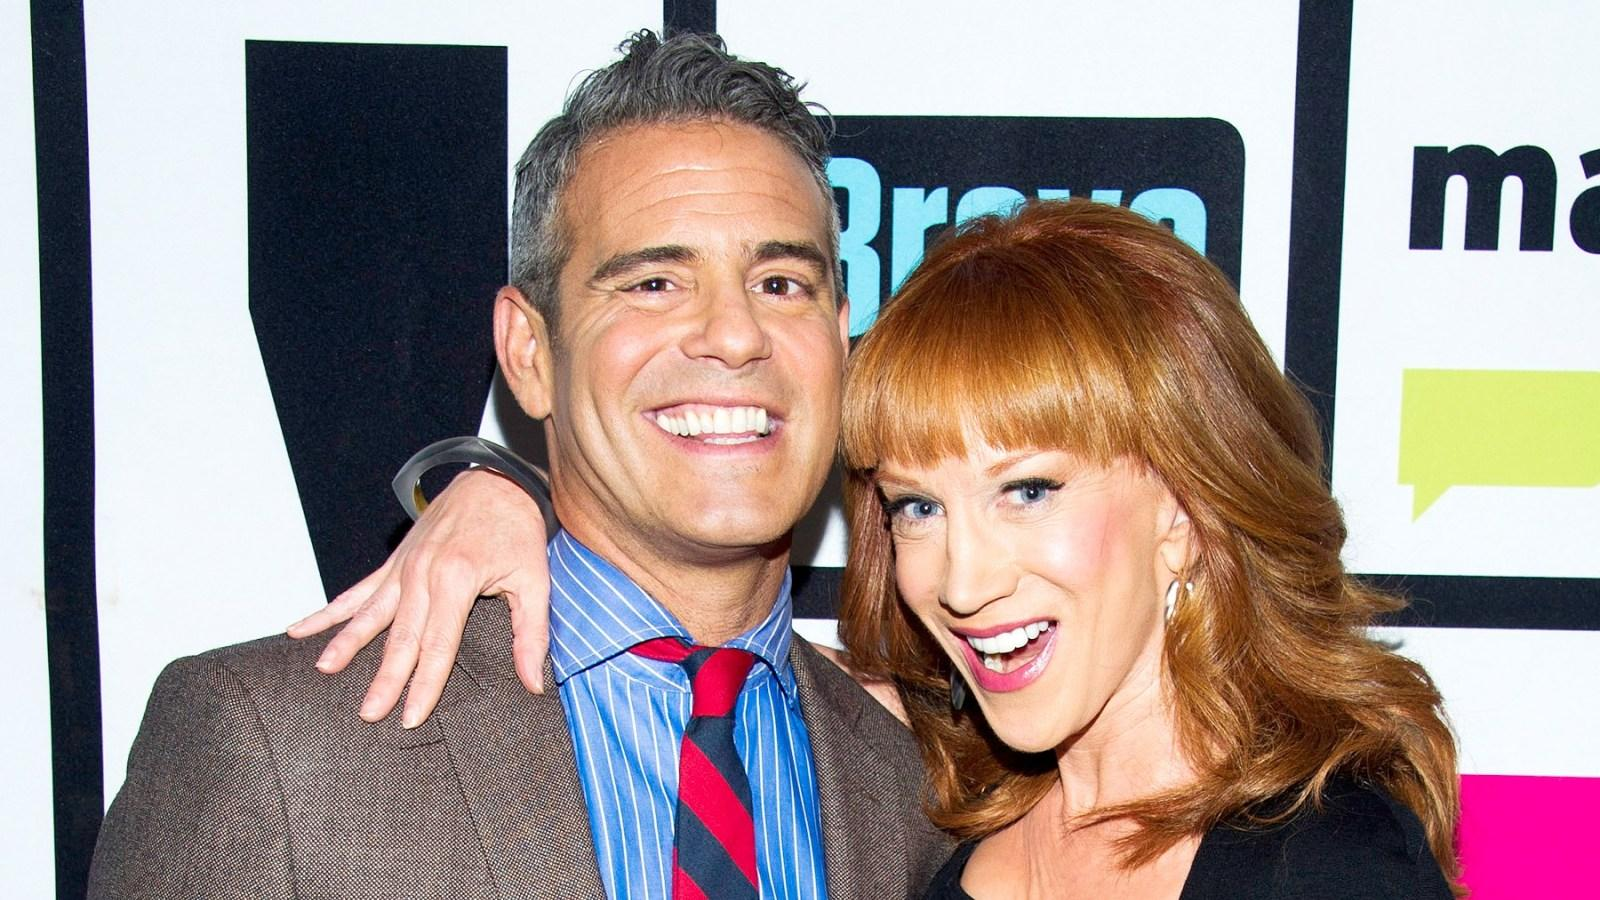 Kathy Griffin Drags Former 'Worst Boss' Andy Cohen, Claims He Treated Her Like A 'Dog!'